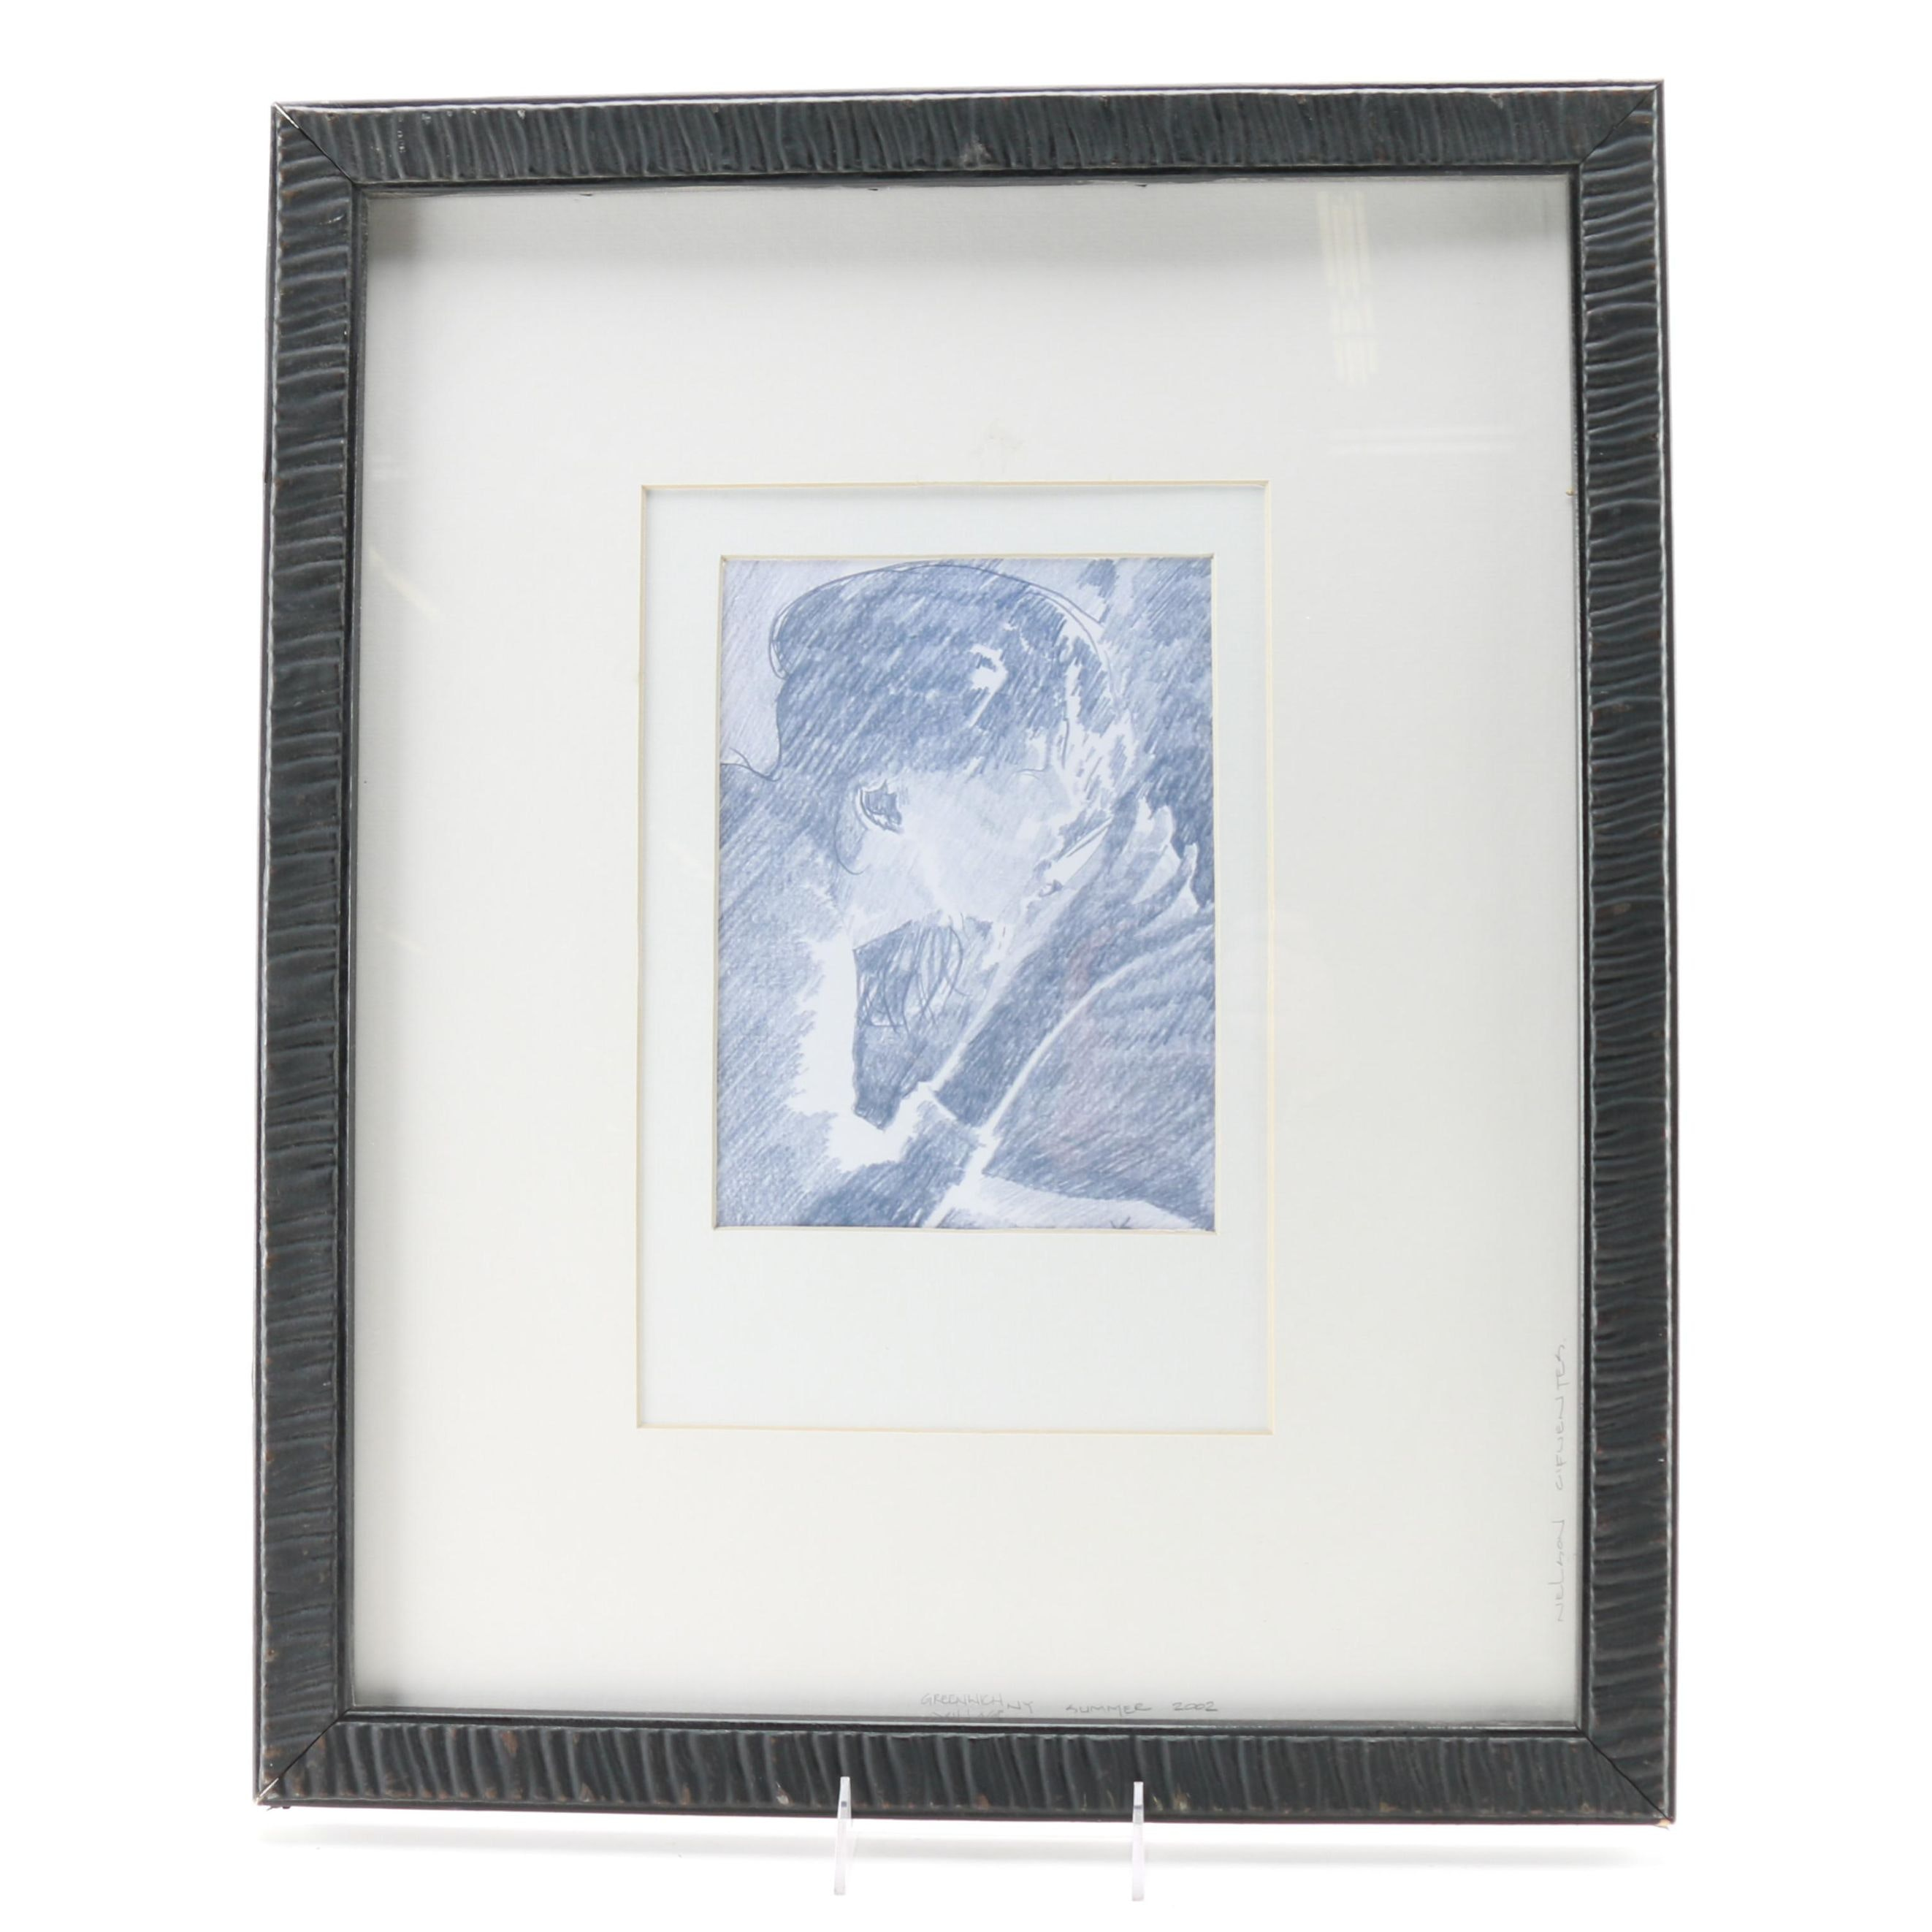 2002 Nelson Cifuentes Colored Pencil Drawing of Woman in Greenwich Village